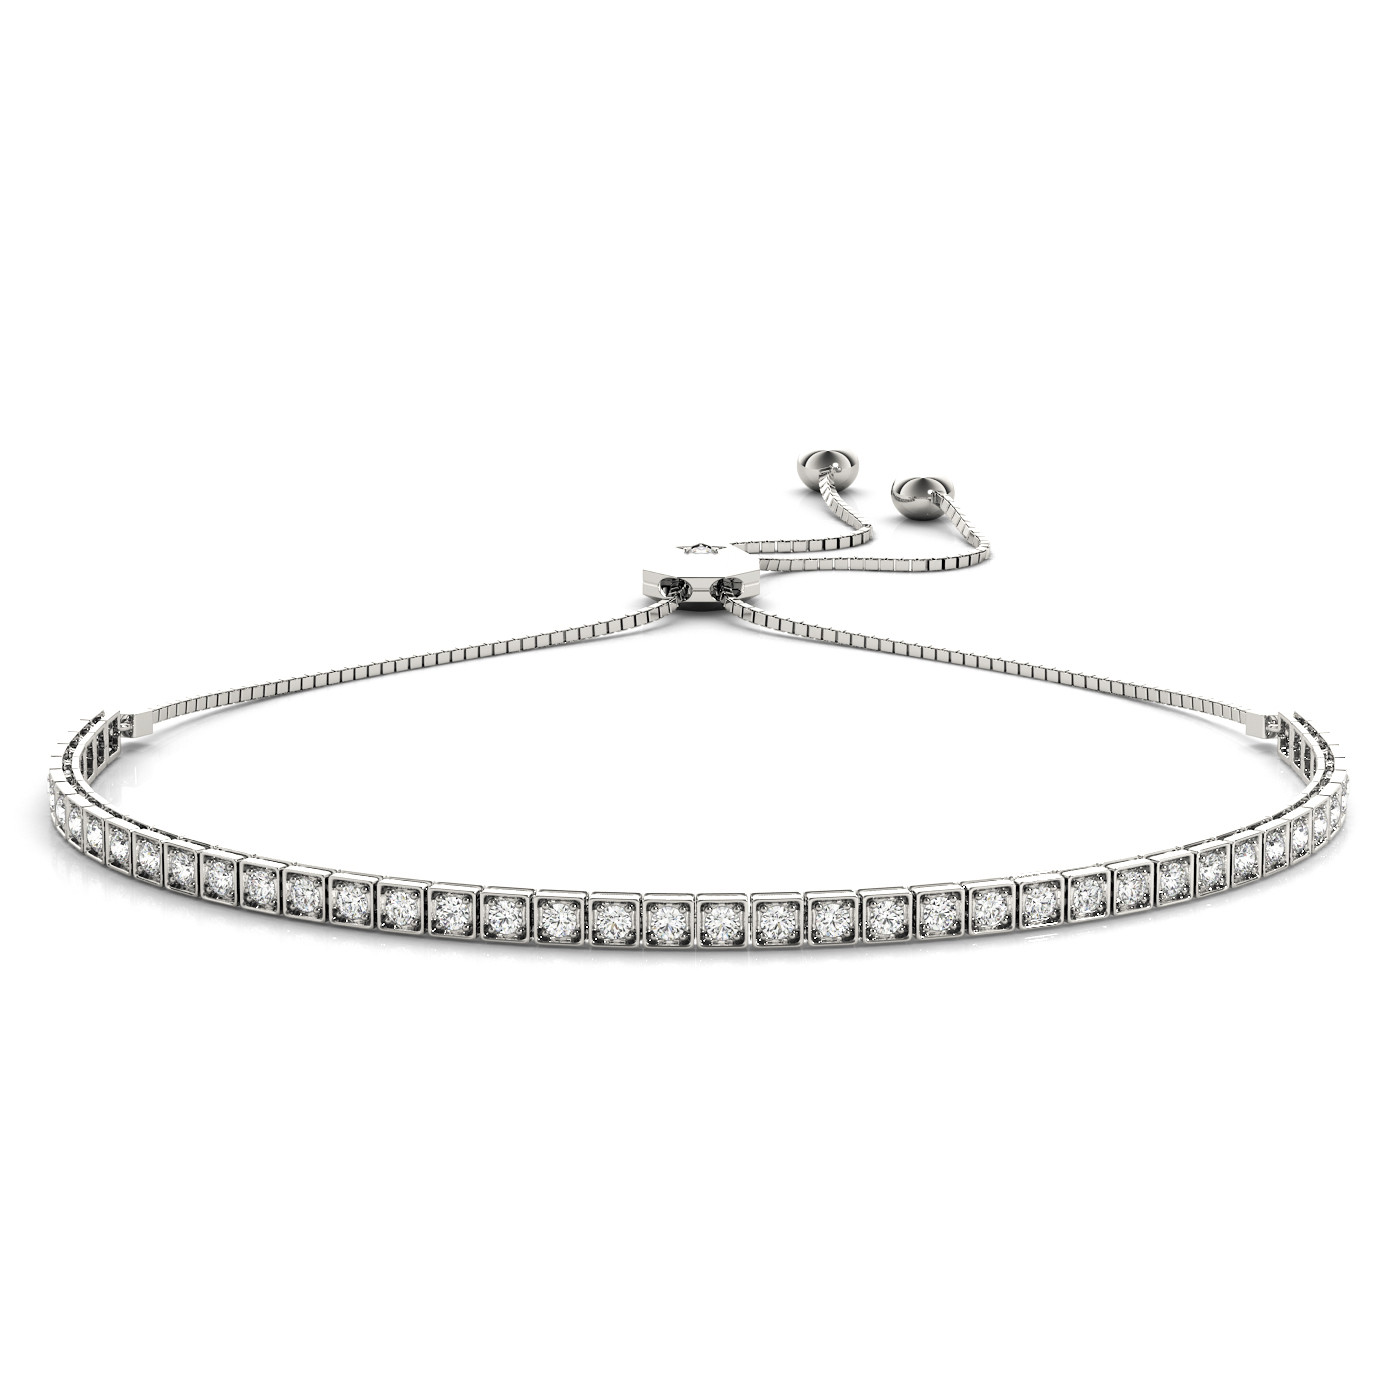 ADJUSTABLE TENNIS BRACELET